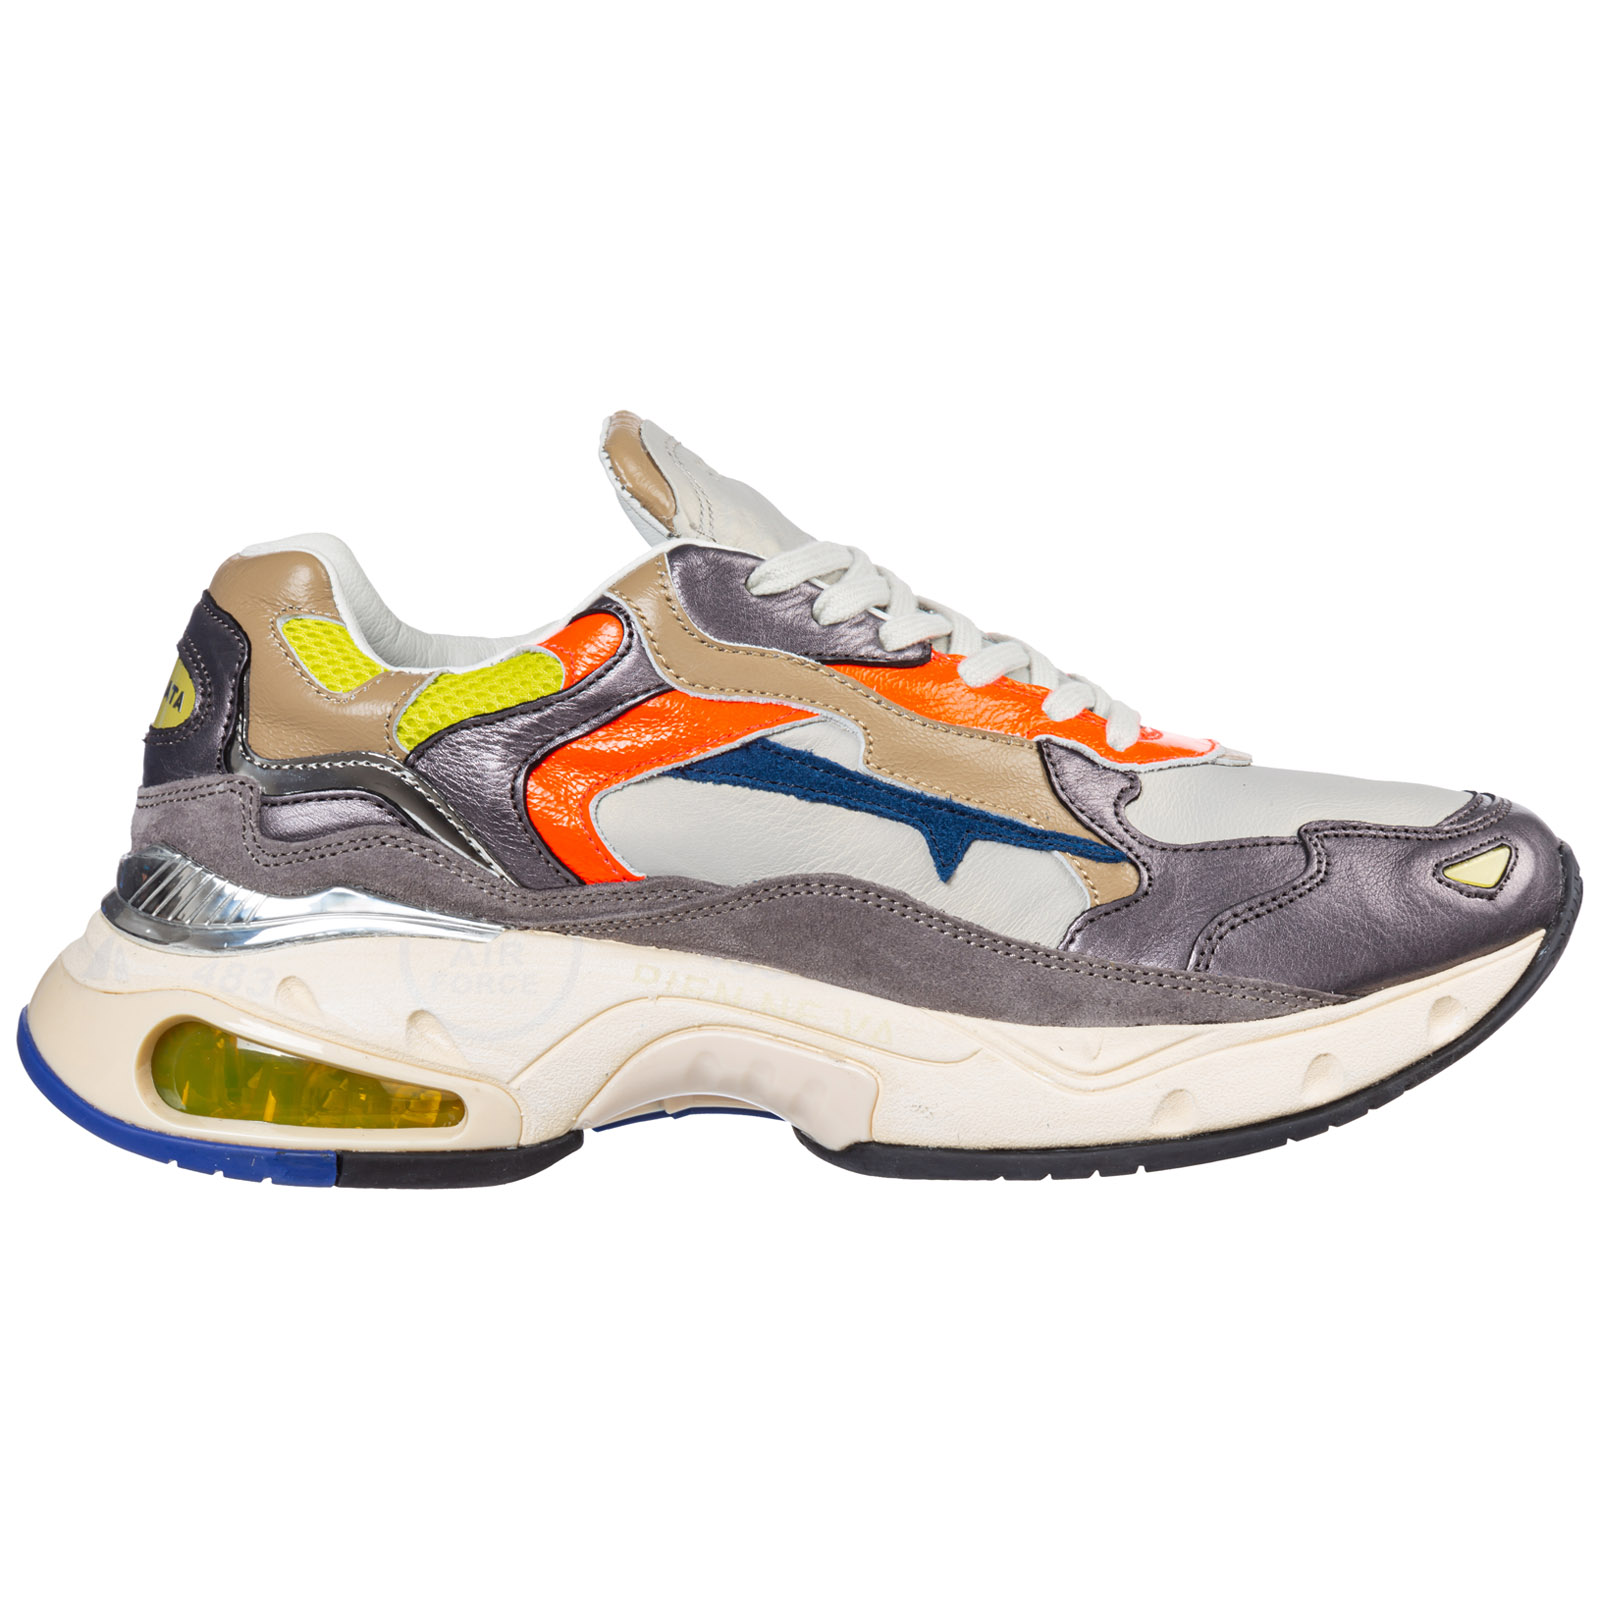 Premiata Sneakers MEN'S SHOES LEATHER TRAINERS SNEAKERS SHARKY